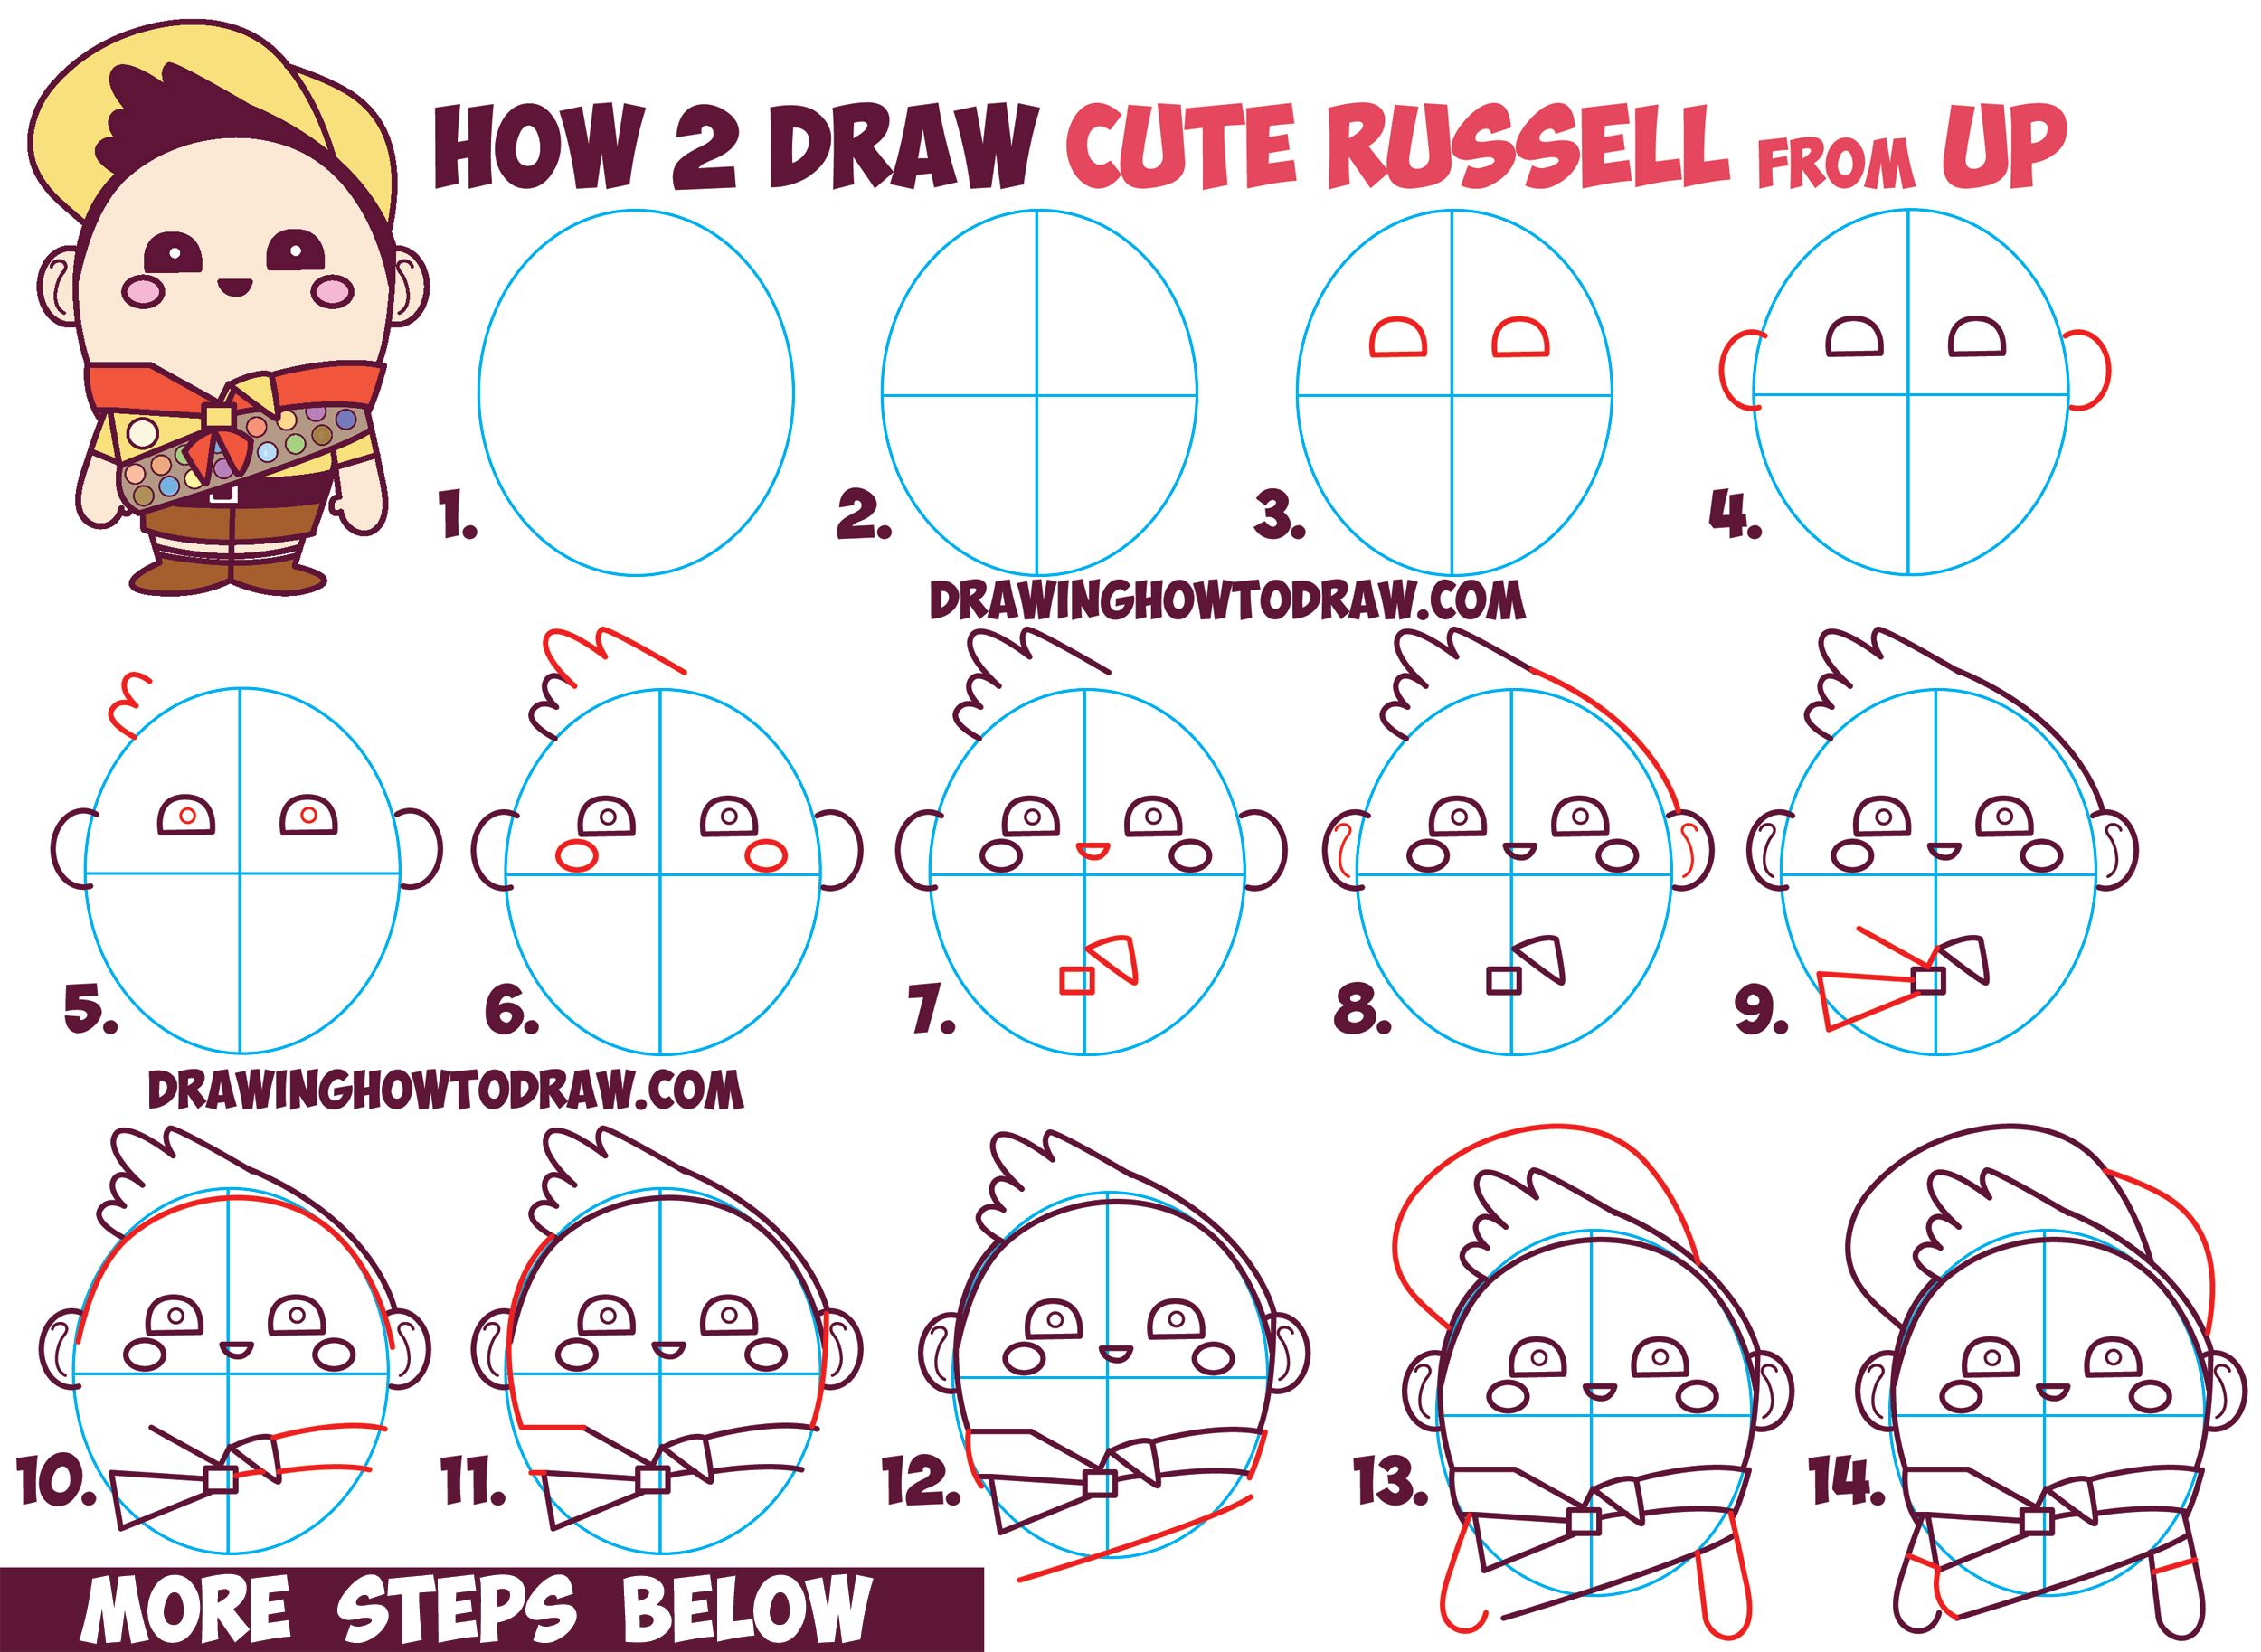 How to Draw Russell the Boy from Disney Pixar's Up - Cute / Chibi / Kawaii Style Drawing Tutorial